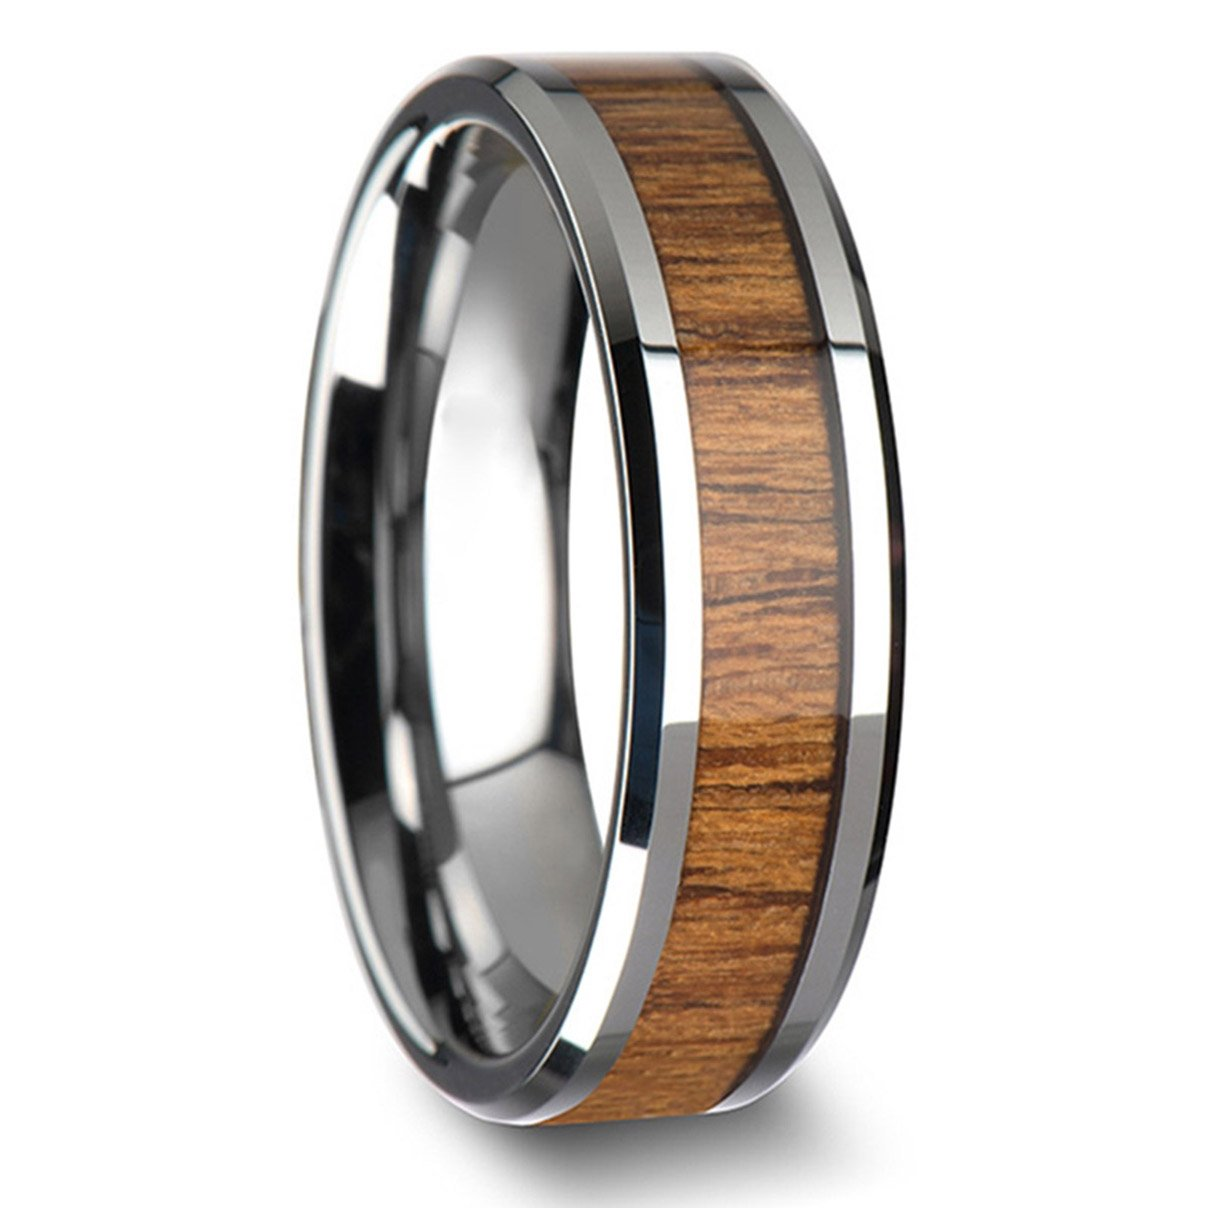 Kebaner Men Women 8MM Stainless Steel Ring Inlay Teak Wood Engagement Wedding Band Cool Gift Size 7-13 Kebaner Company KR08-6-ALL